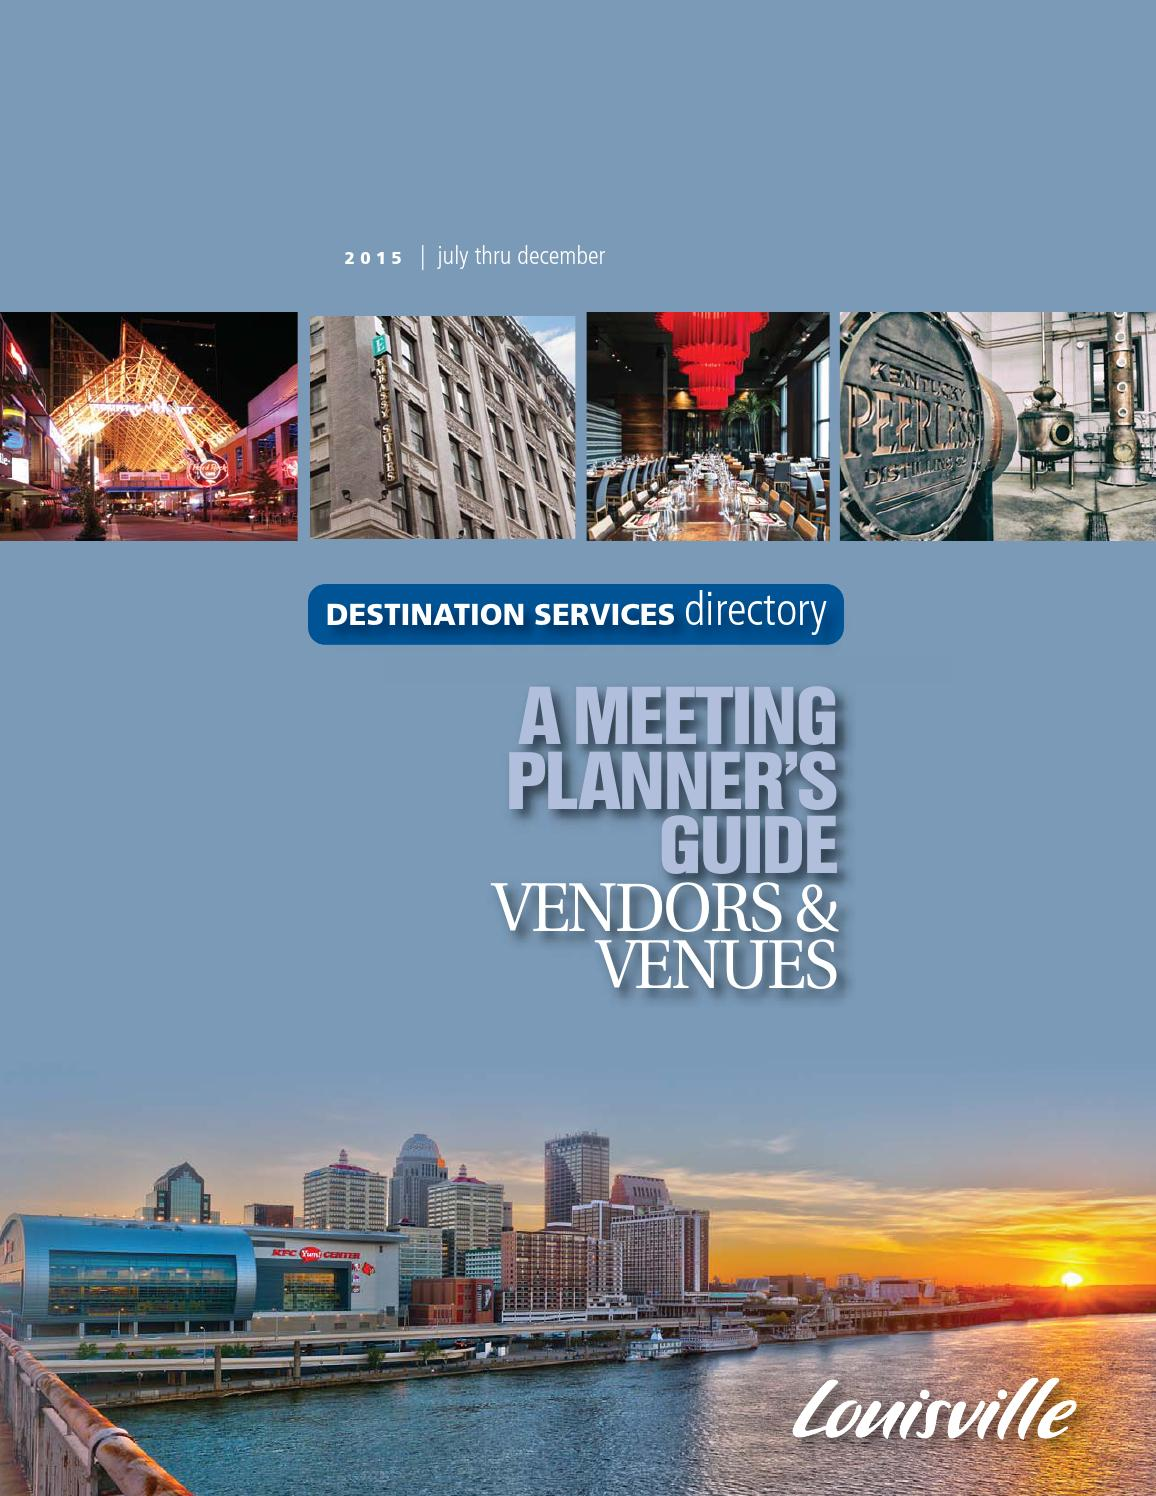 Louisville Destination Services Directory by Louisville Convention    Visitors Bureau - issuu 936dbe504c5